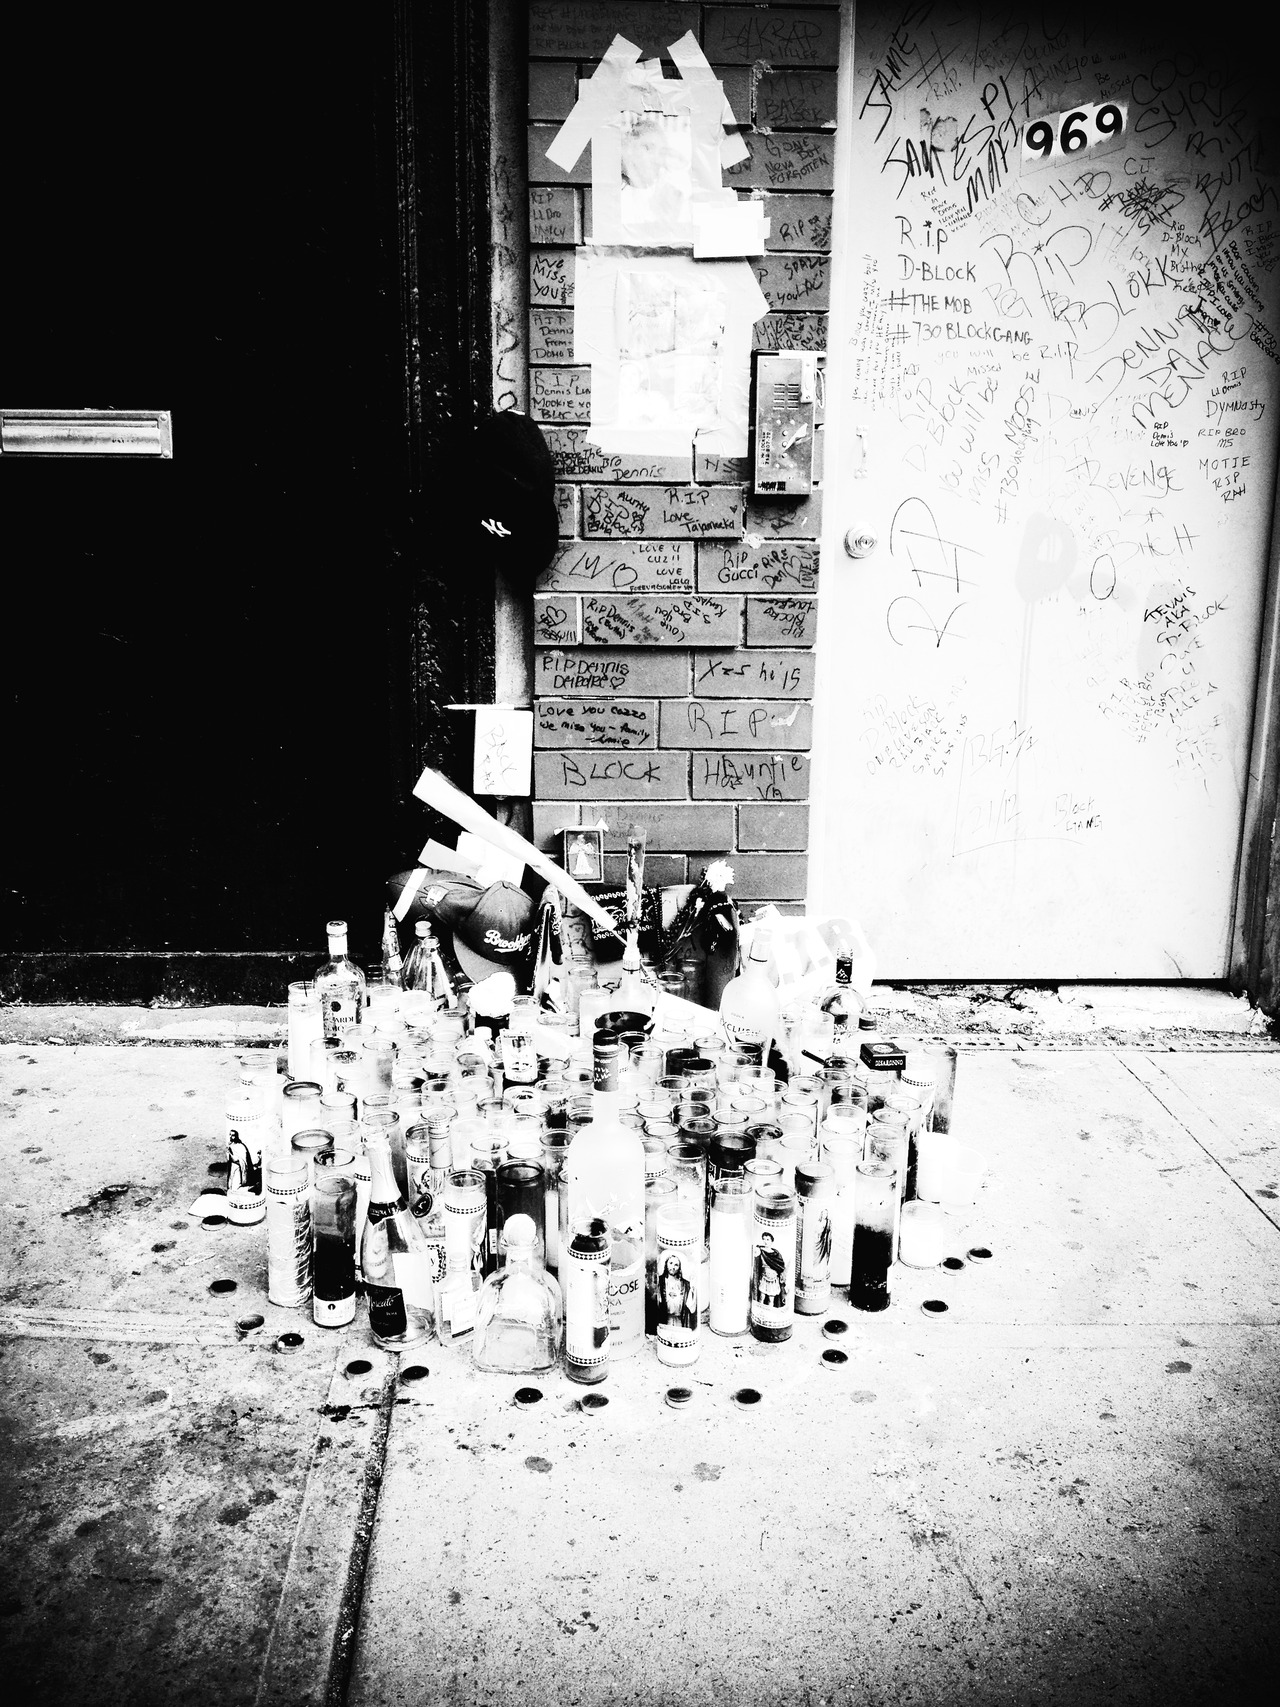 Gone Home Too Soon B/w #peppersearching #pepper #photos #youthviolence #guns #youth